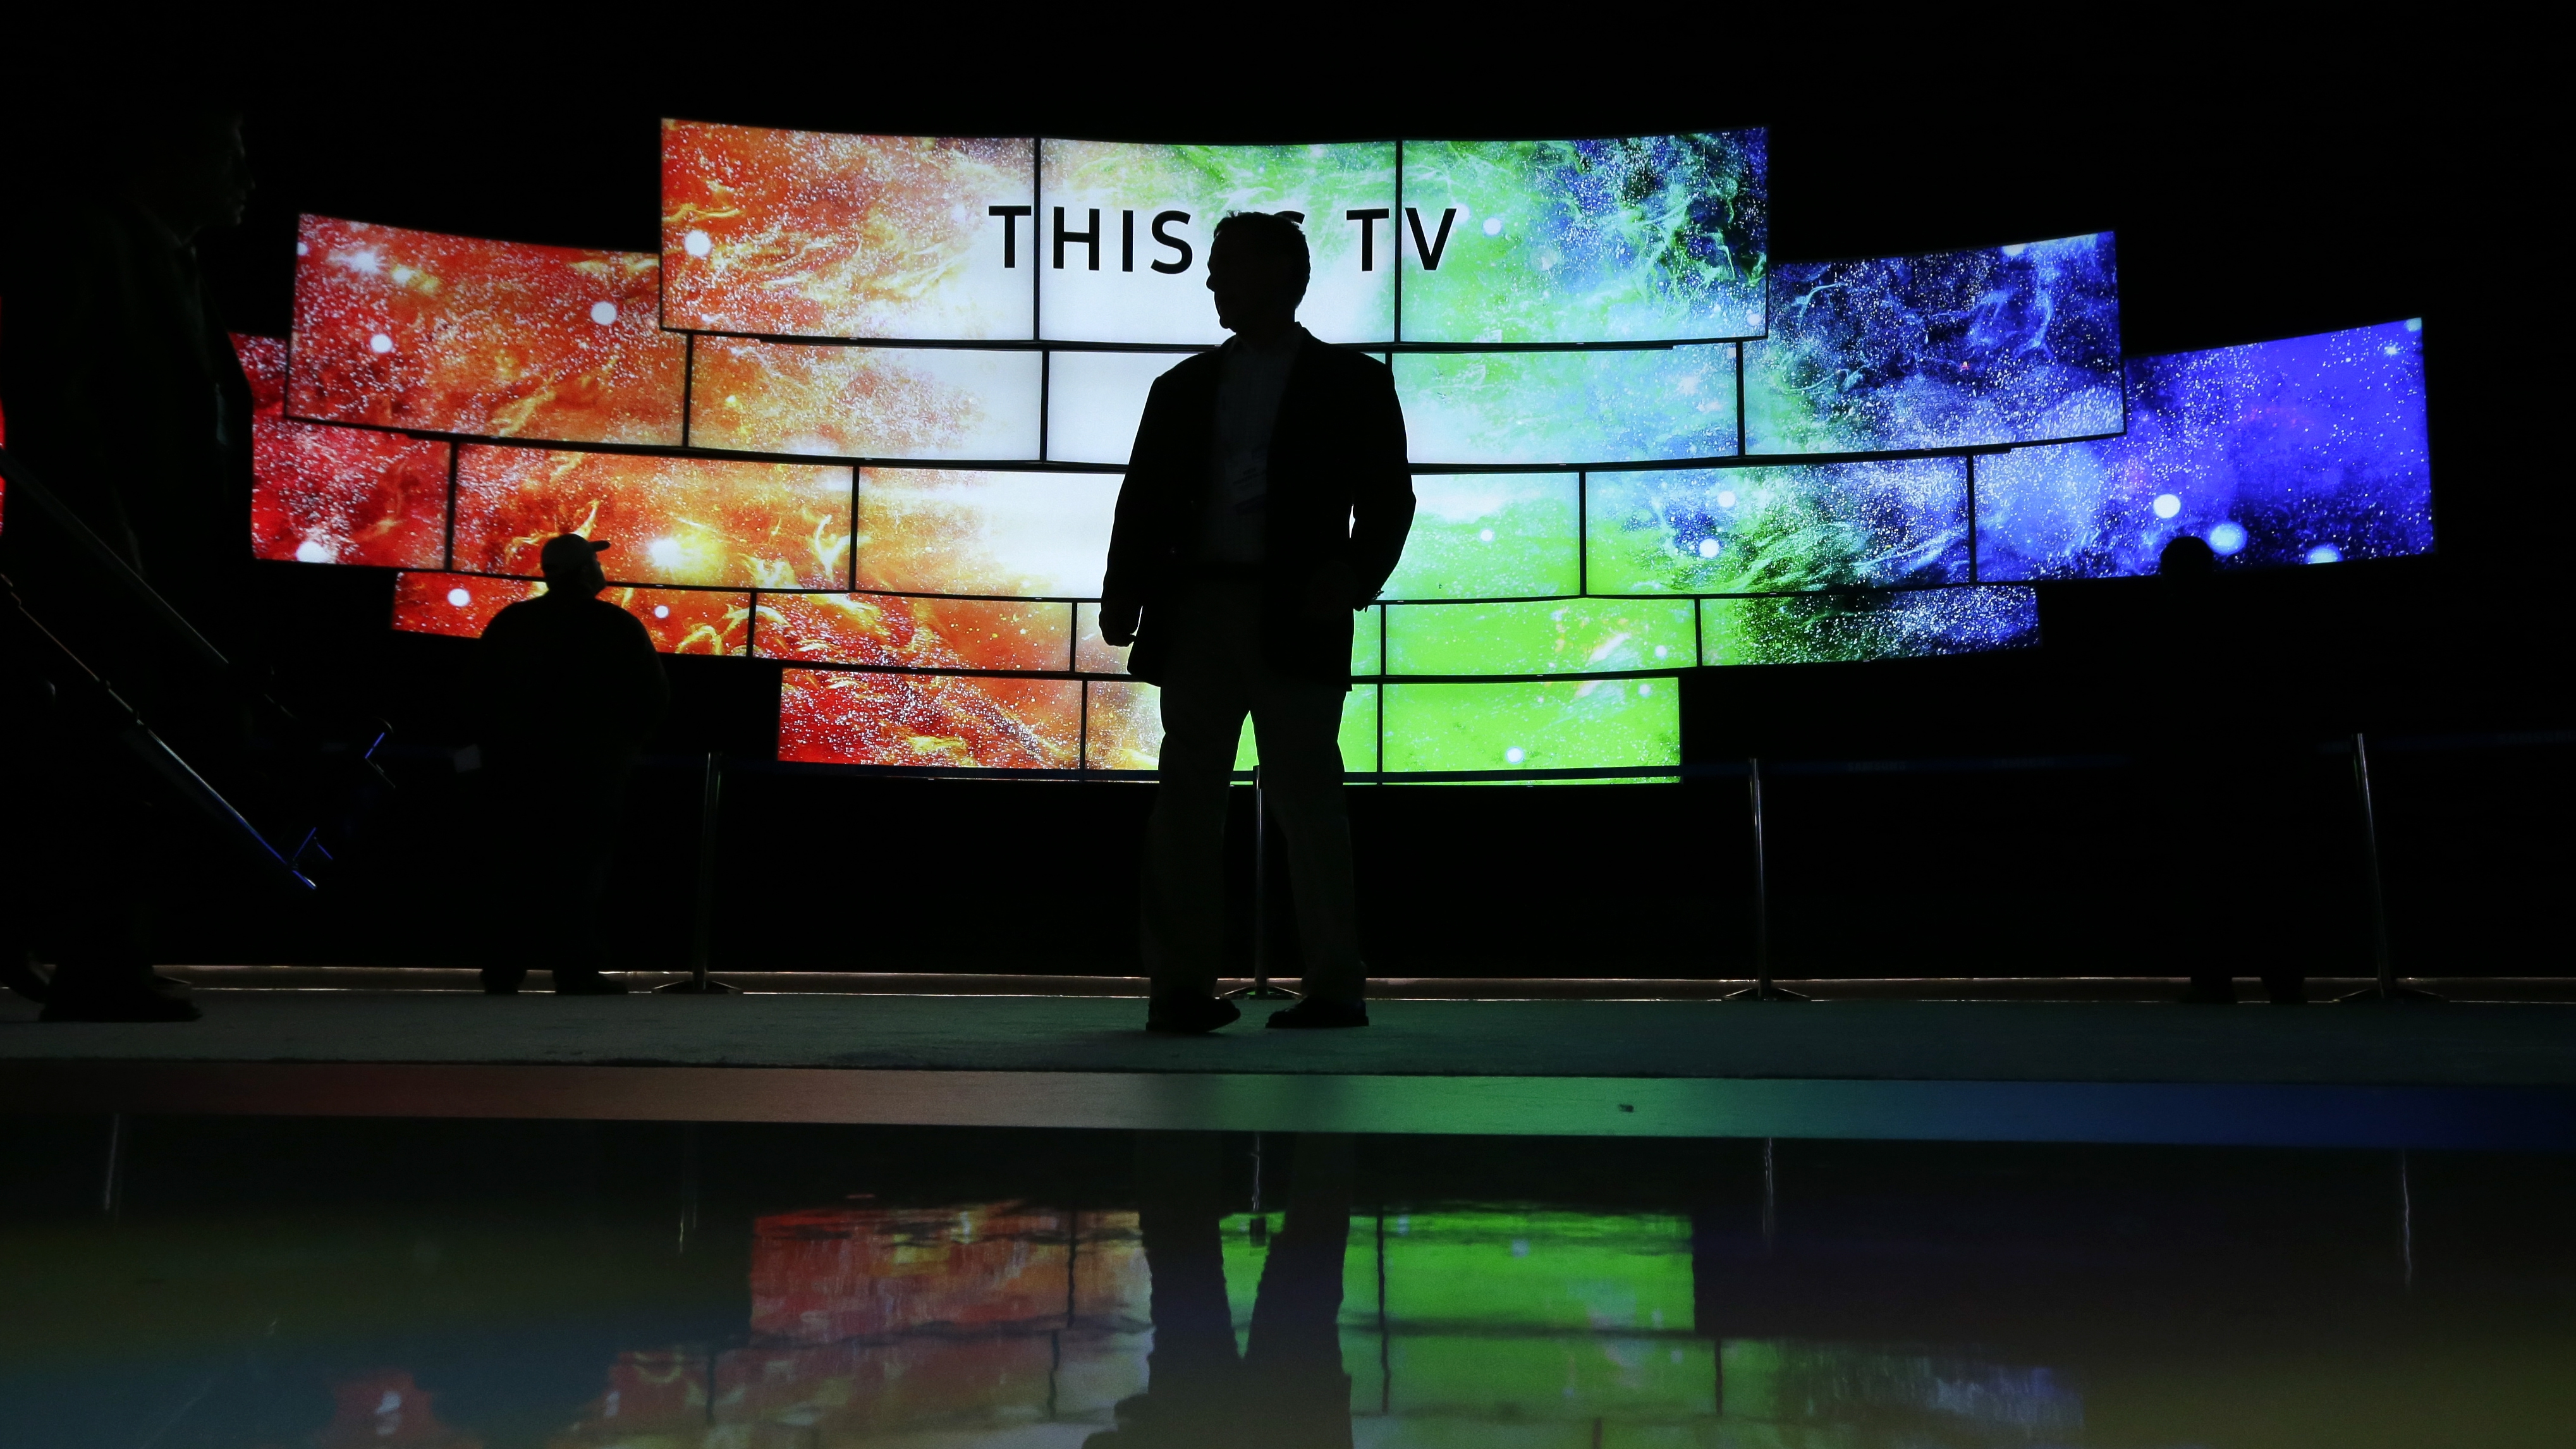 A man looks at Samsung SUHD TVs at CES International Wednesday, Jan. 6, 2016, in Las Vegas. (AP Photo/Gregory Bull)